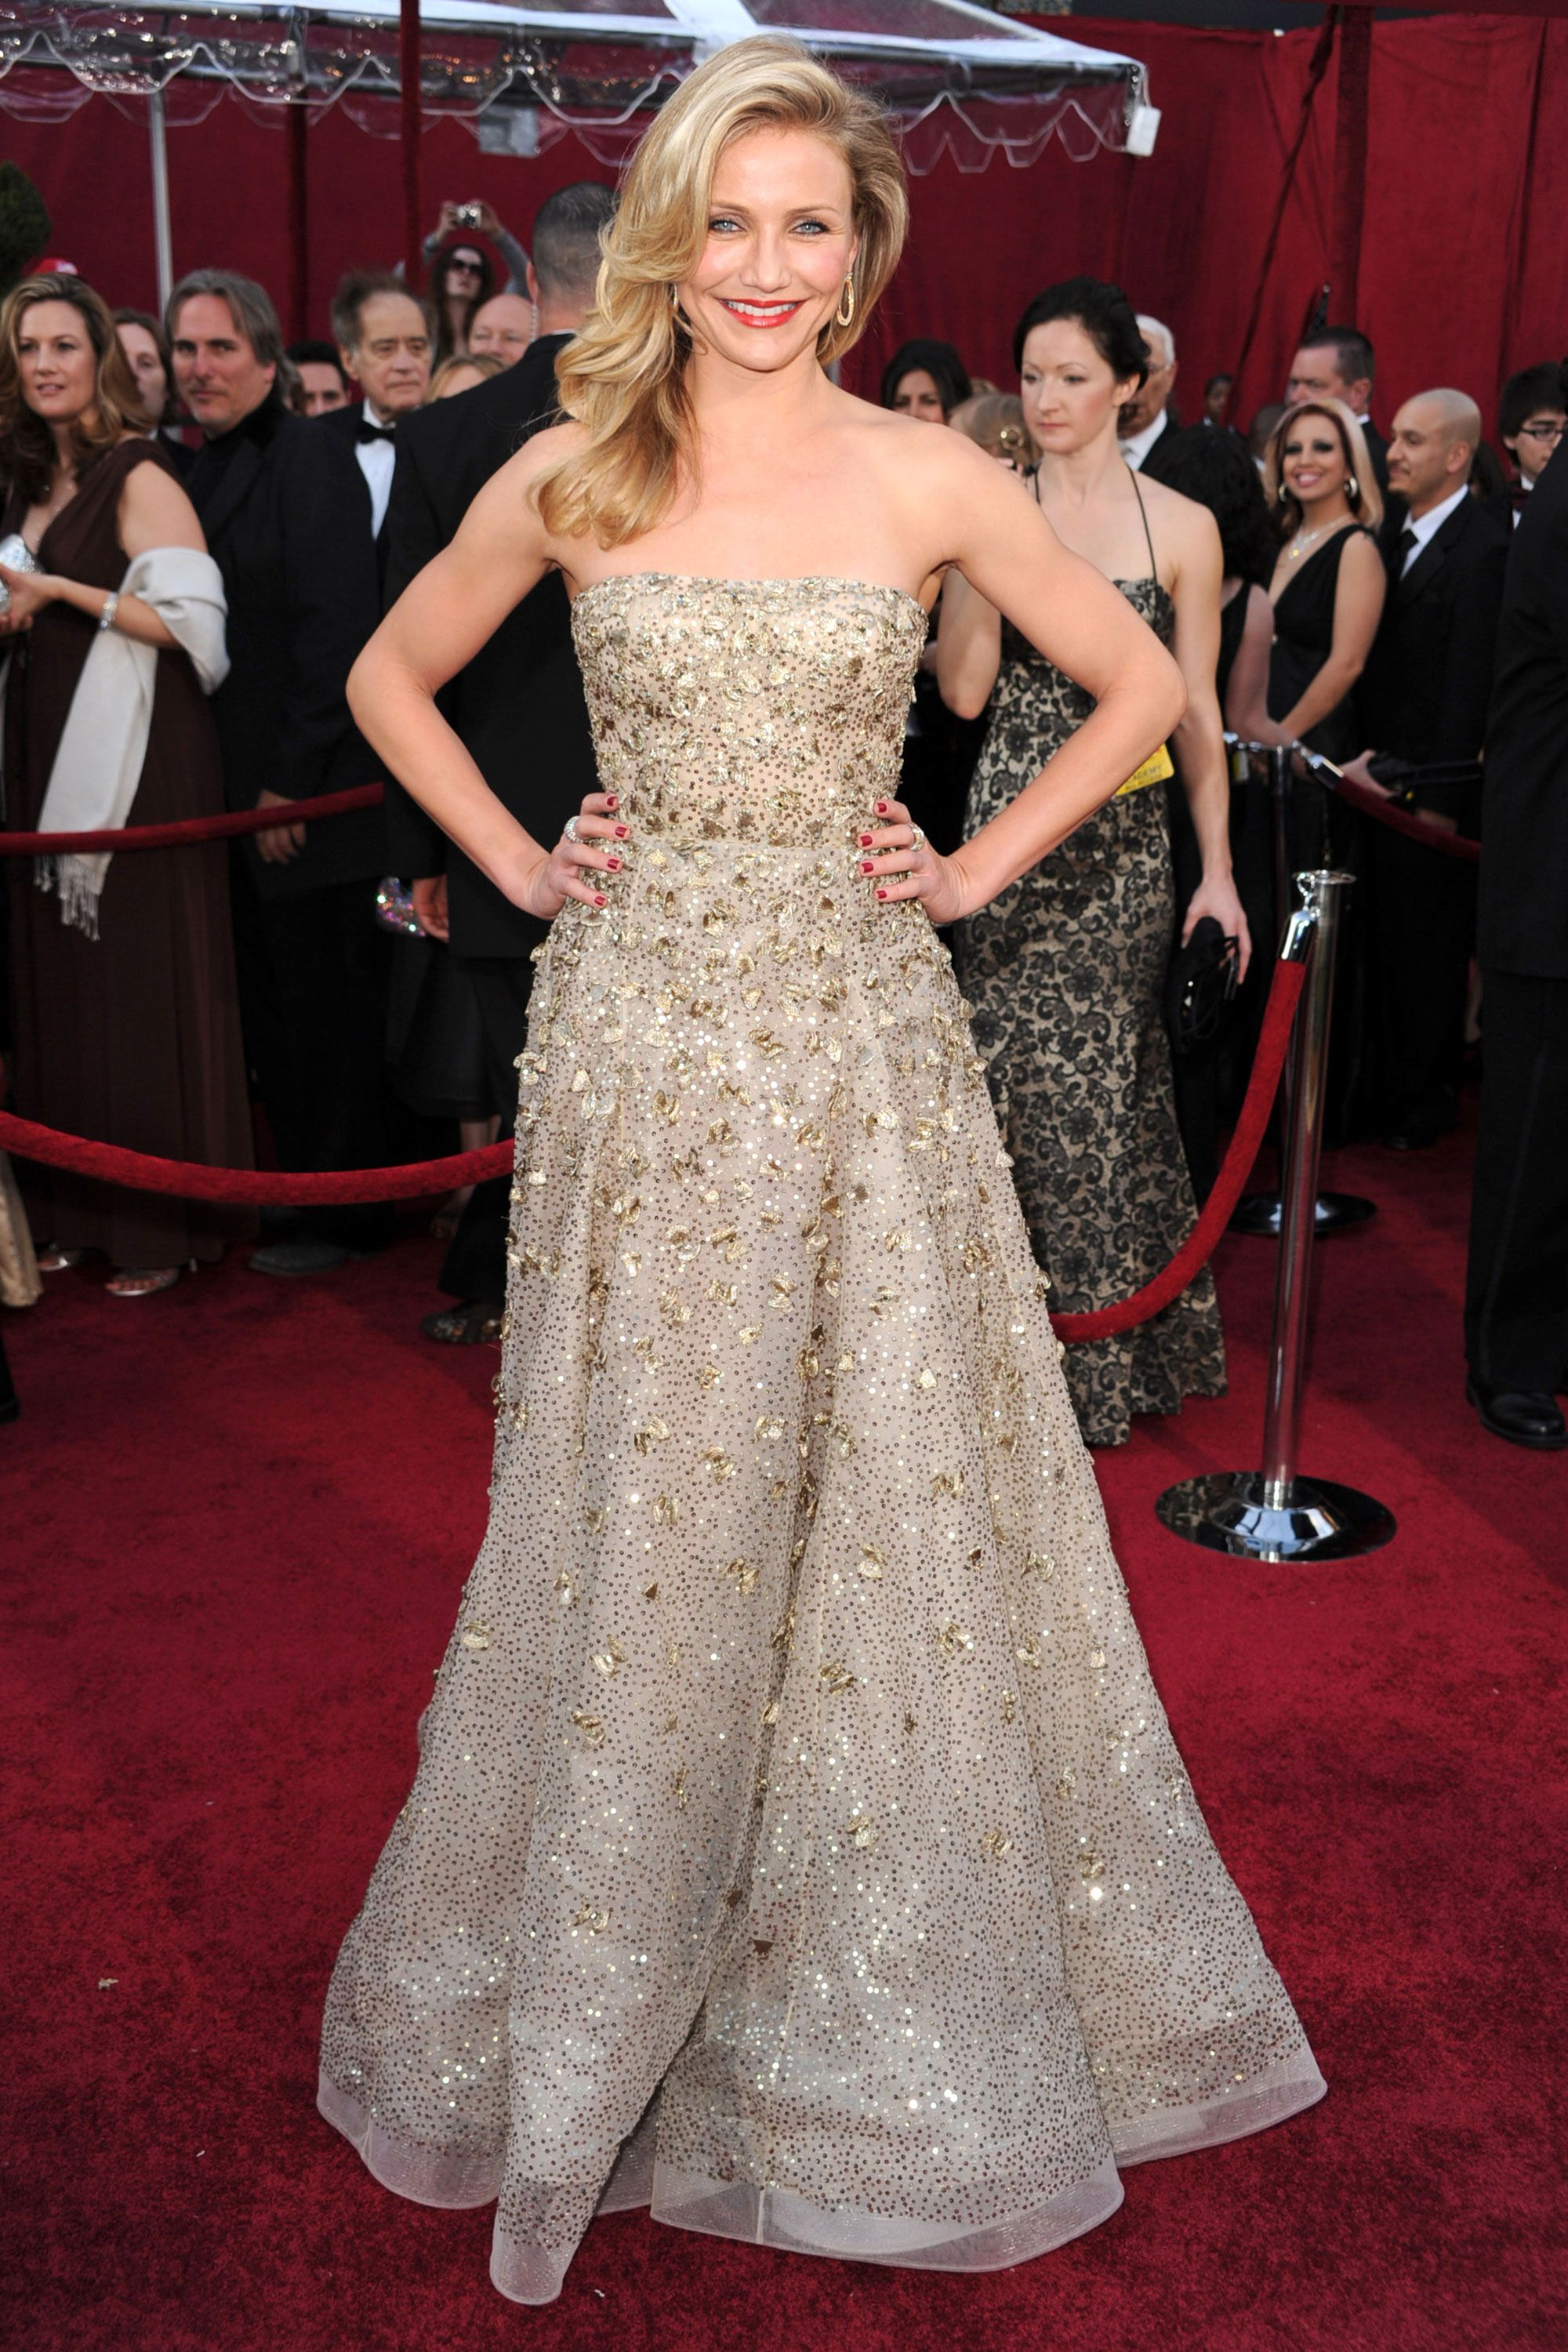 The Best Red Carpet Gowns Of All Time Red Carpet Dresses Best Red Carpet Dresses Red Carpet Gowns